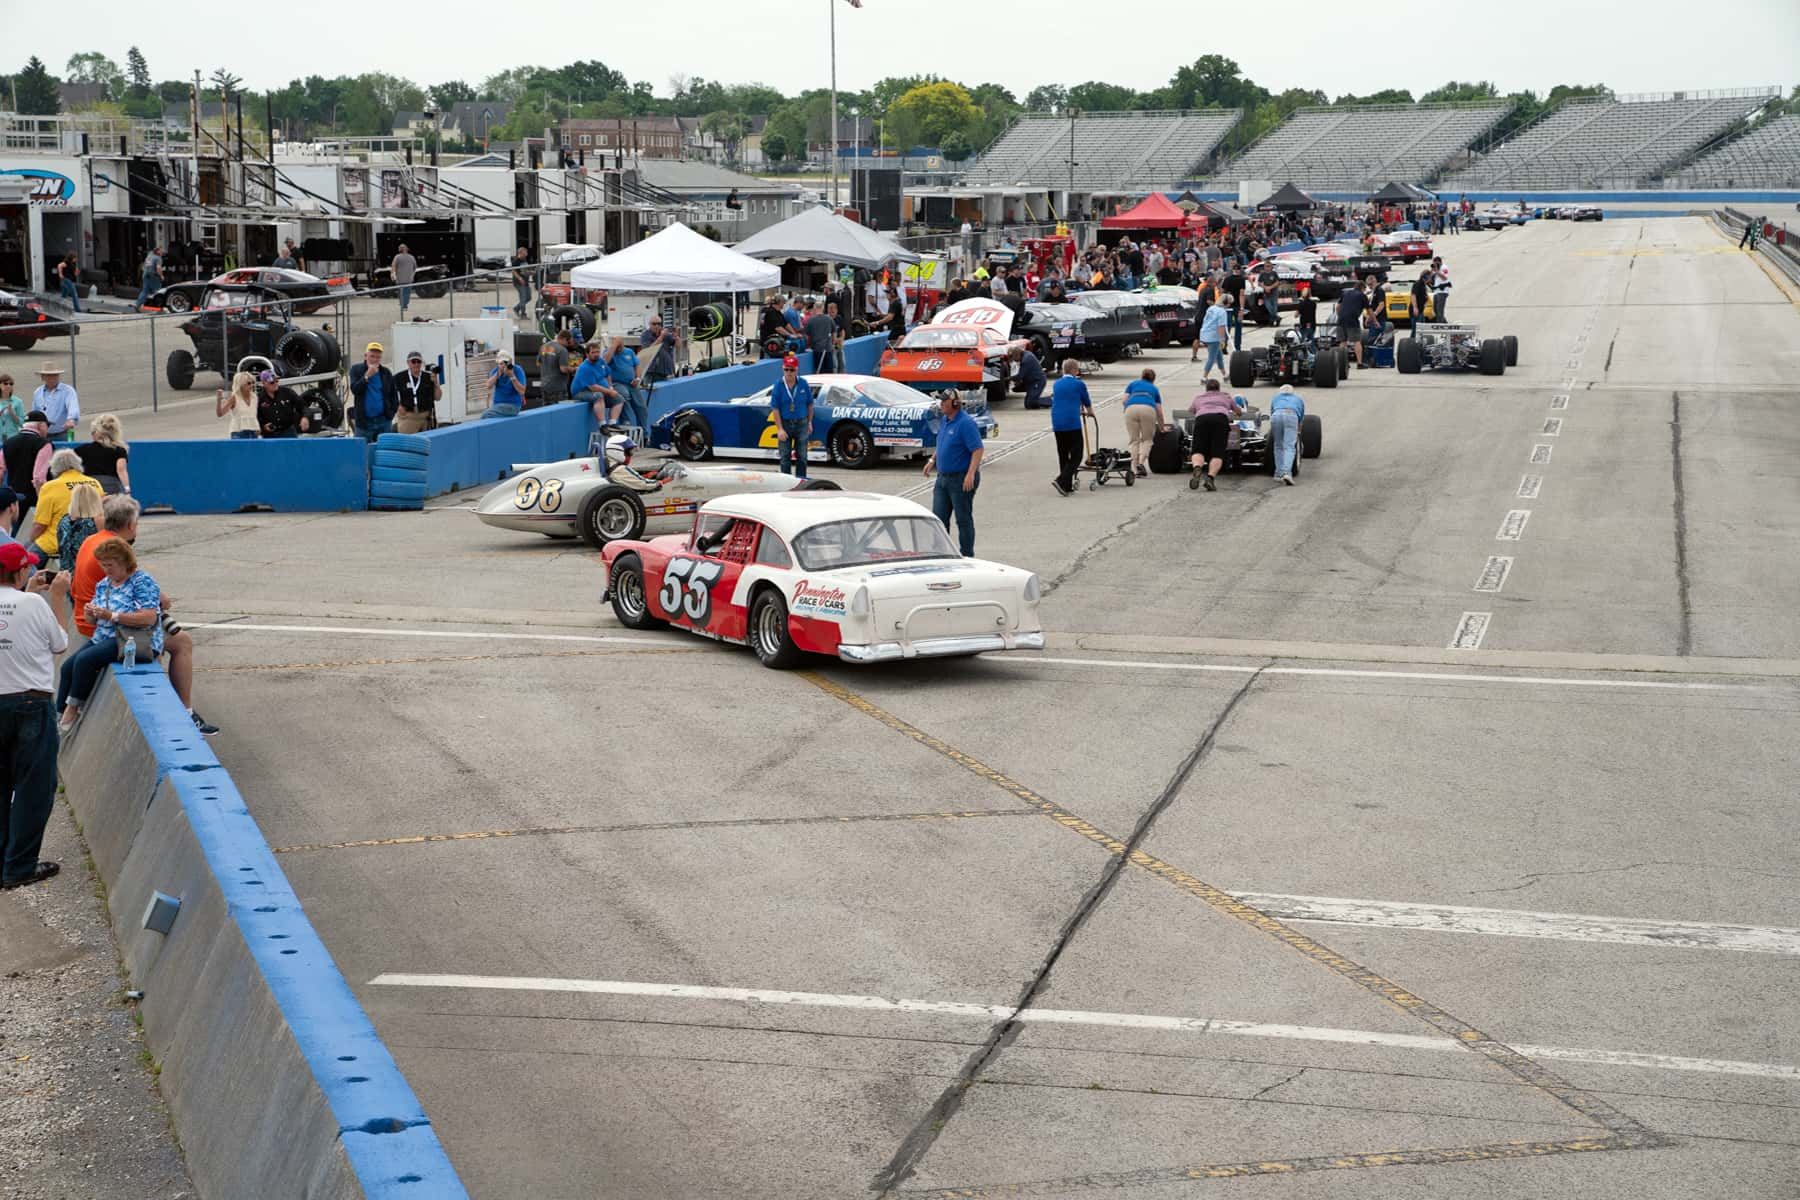 02_062019_milwaukeemile_007